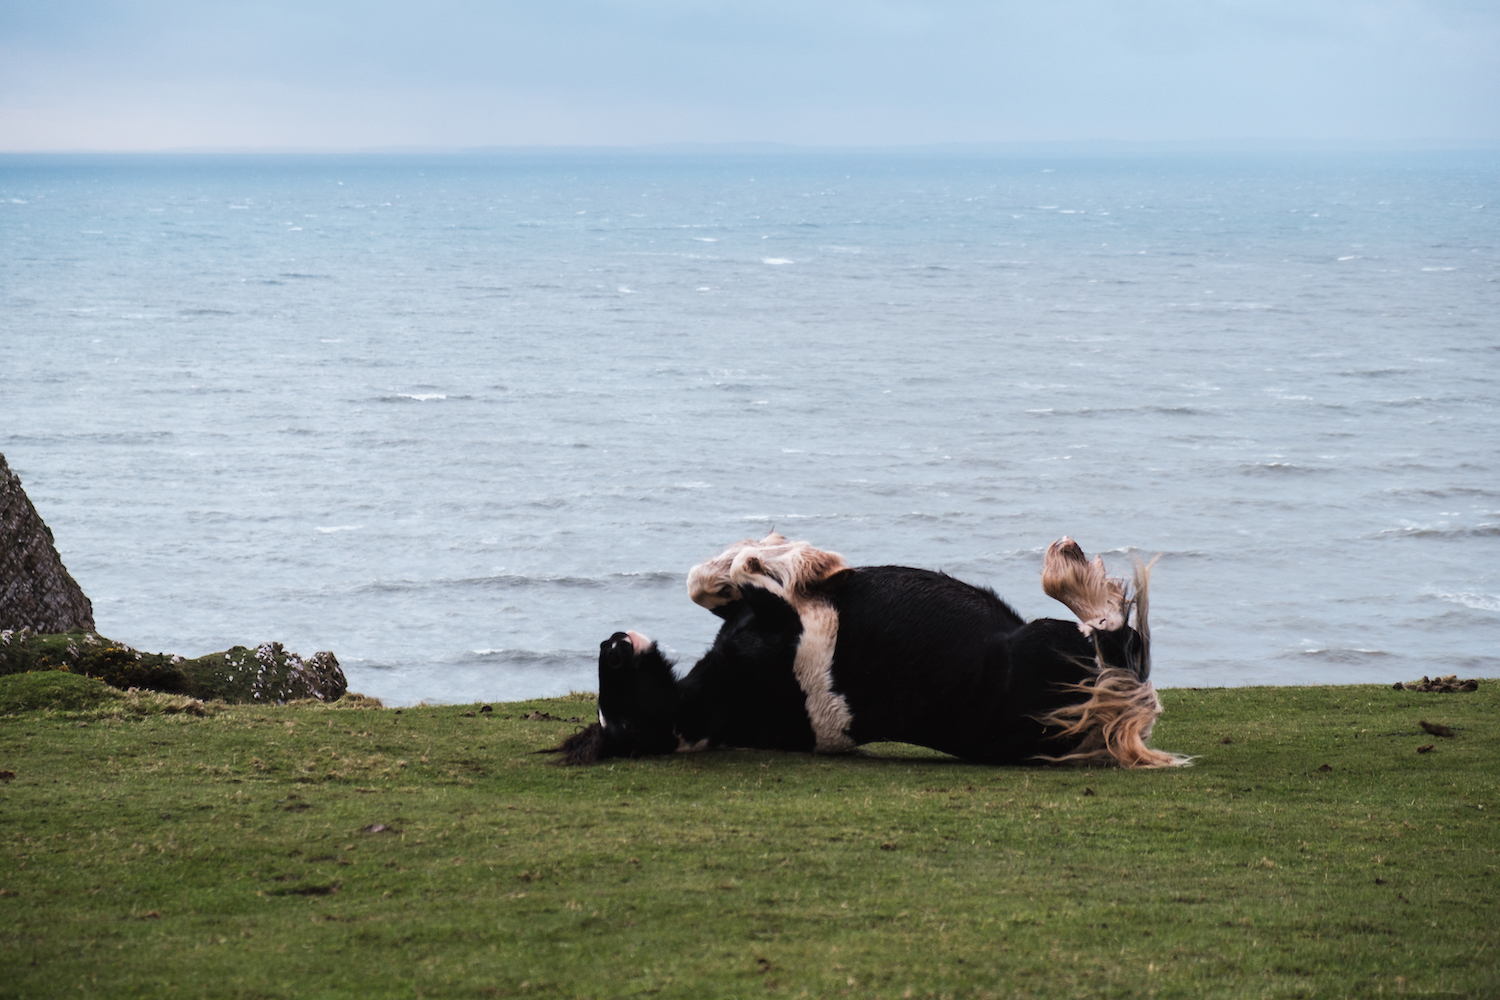 Wild horses play in Rhossili Bay (Gower Peninsula, South Wales).